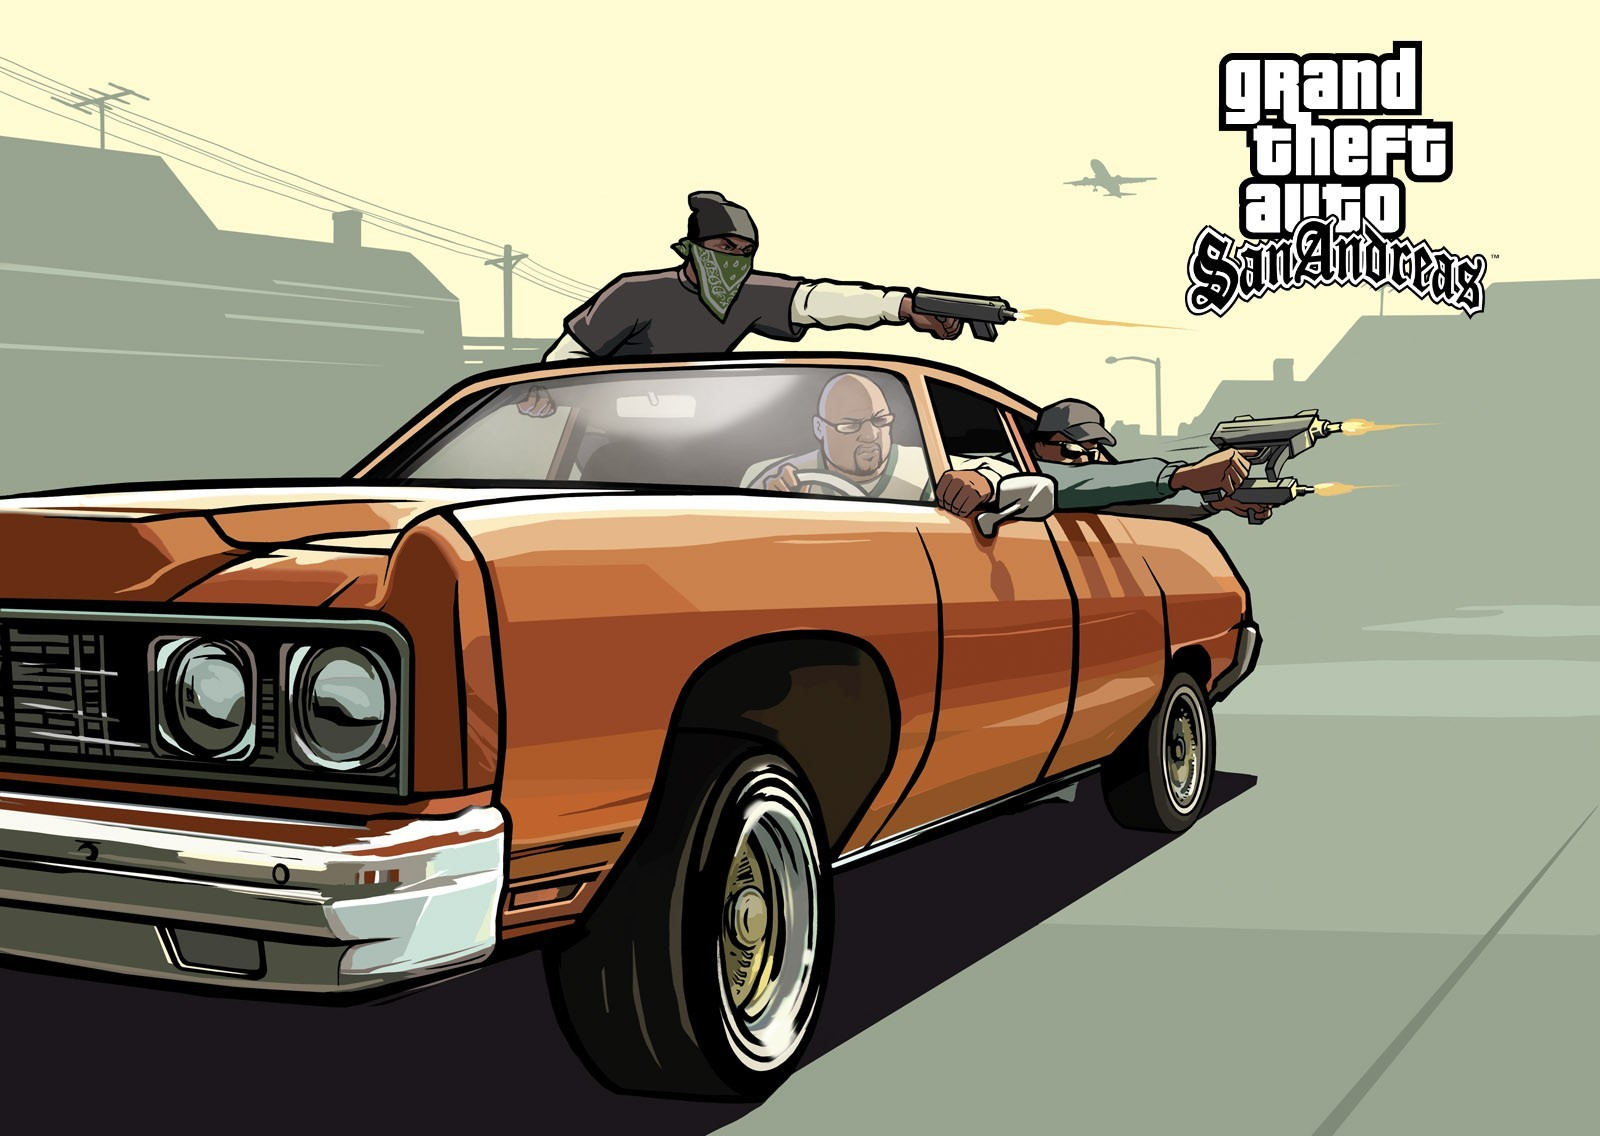 cheat gta san andreas pc bisa disini cheat gta san andreas pc uang